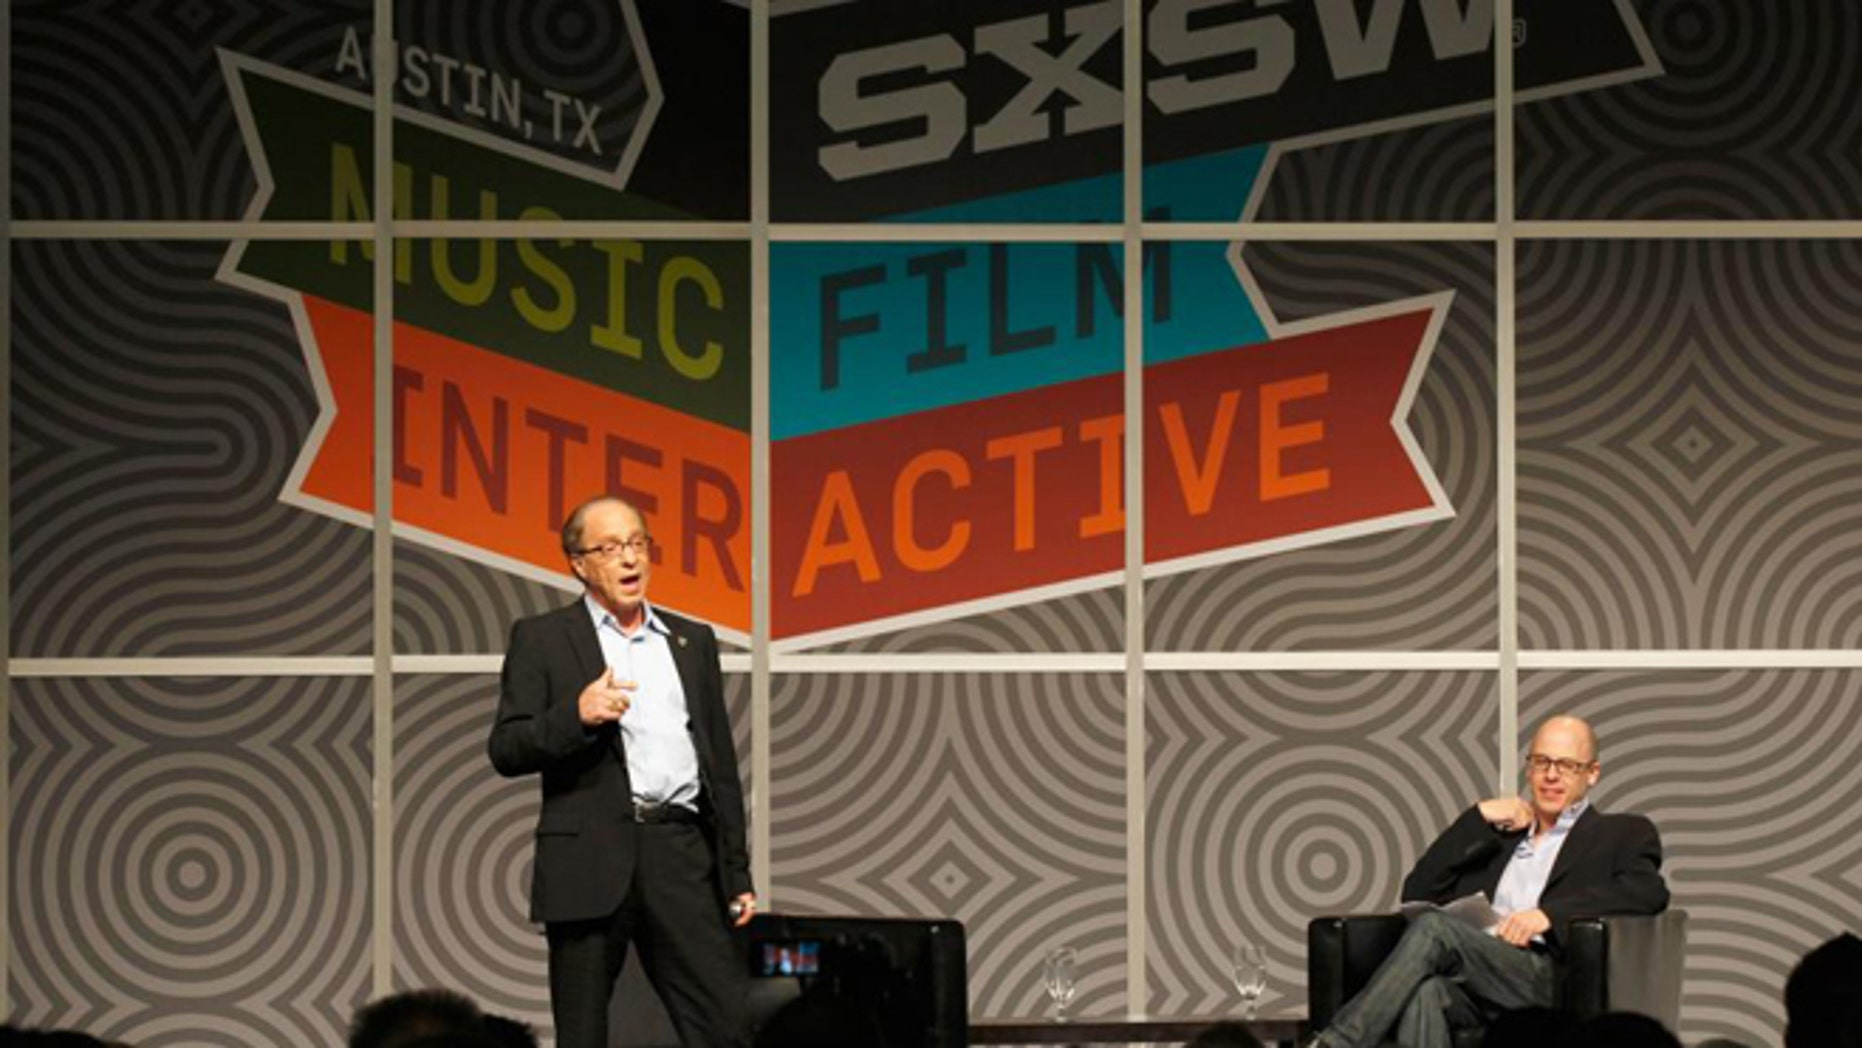 Ray Kurzweil and Sean Mathis, seen at the 2012 SXSWi show in Austin, Texas.